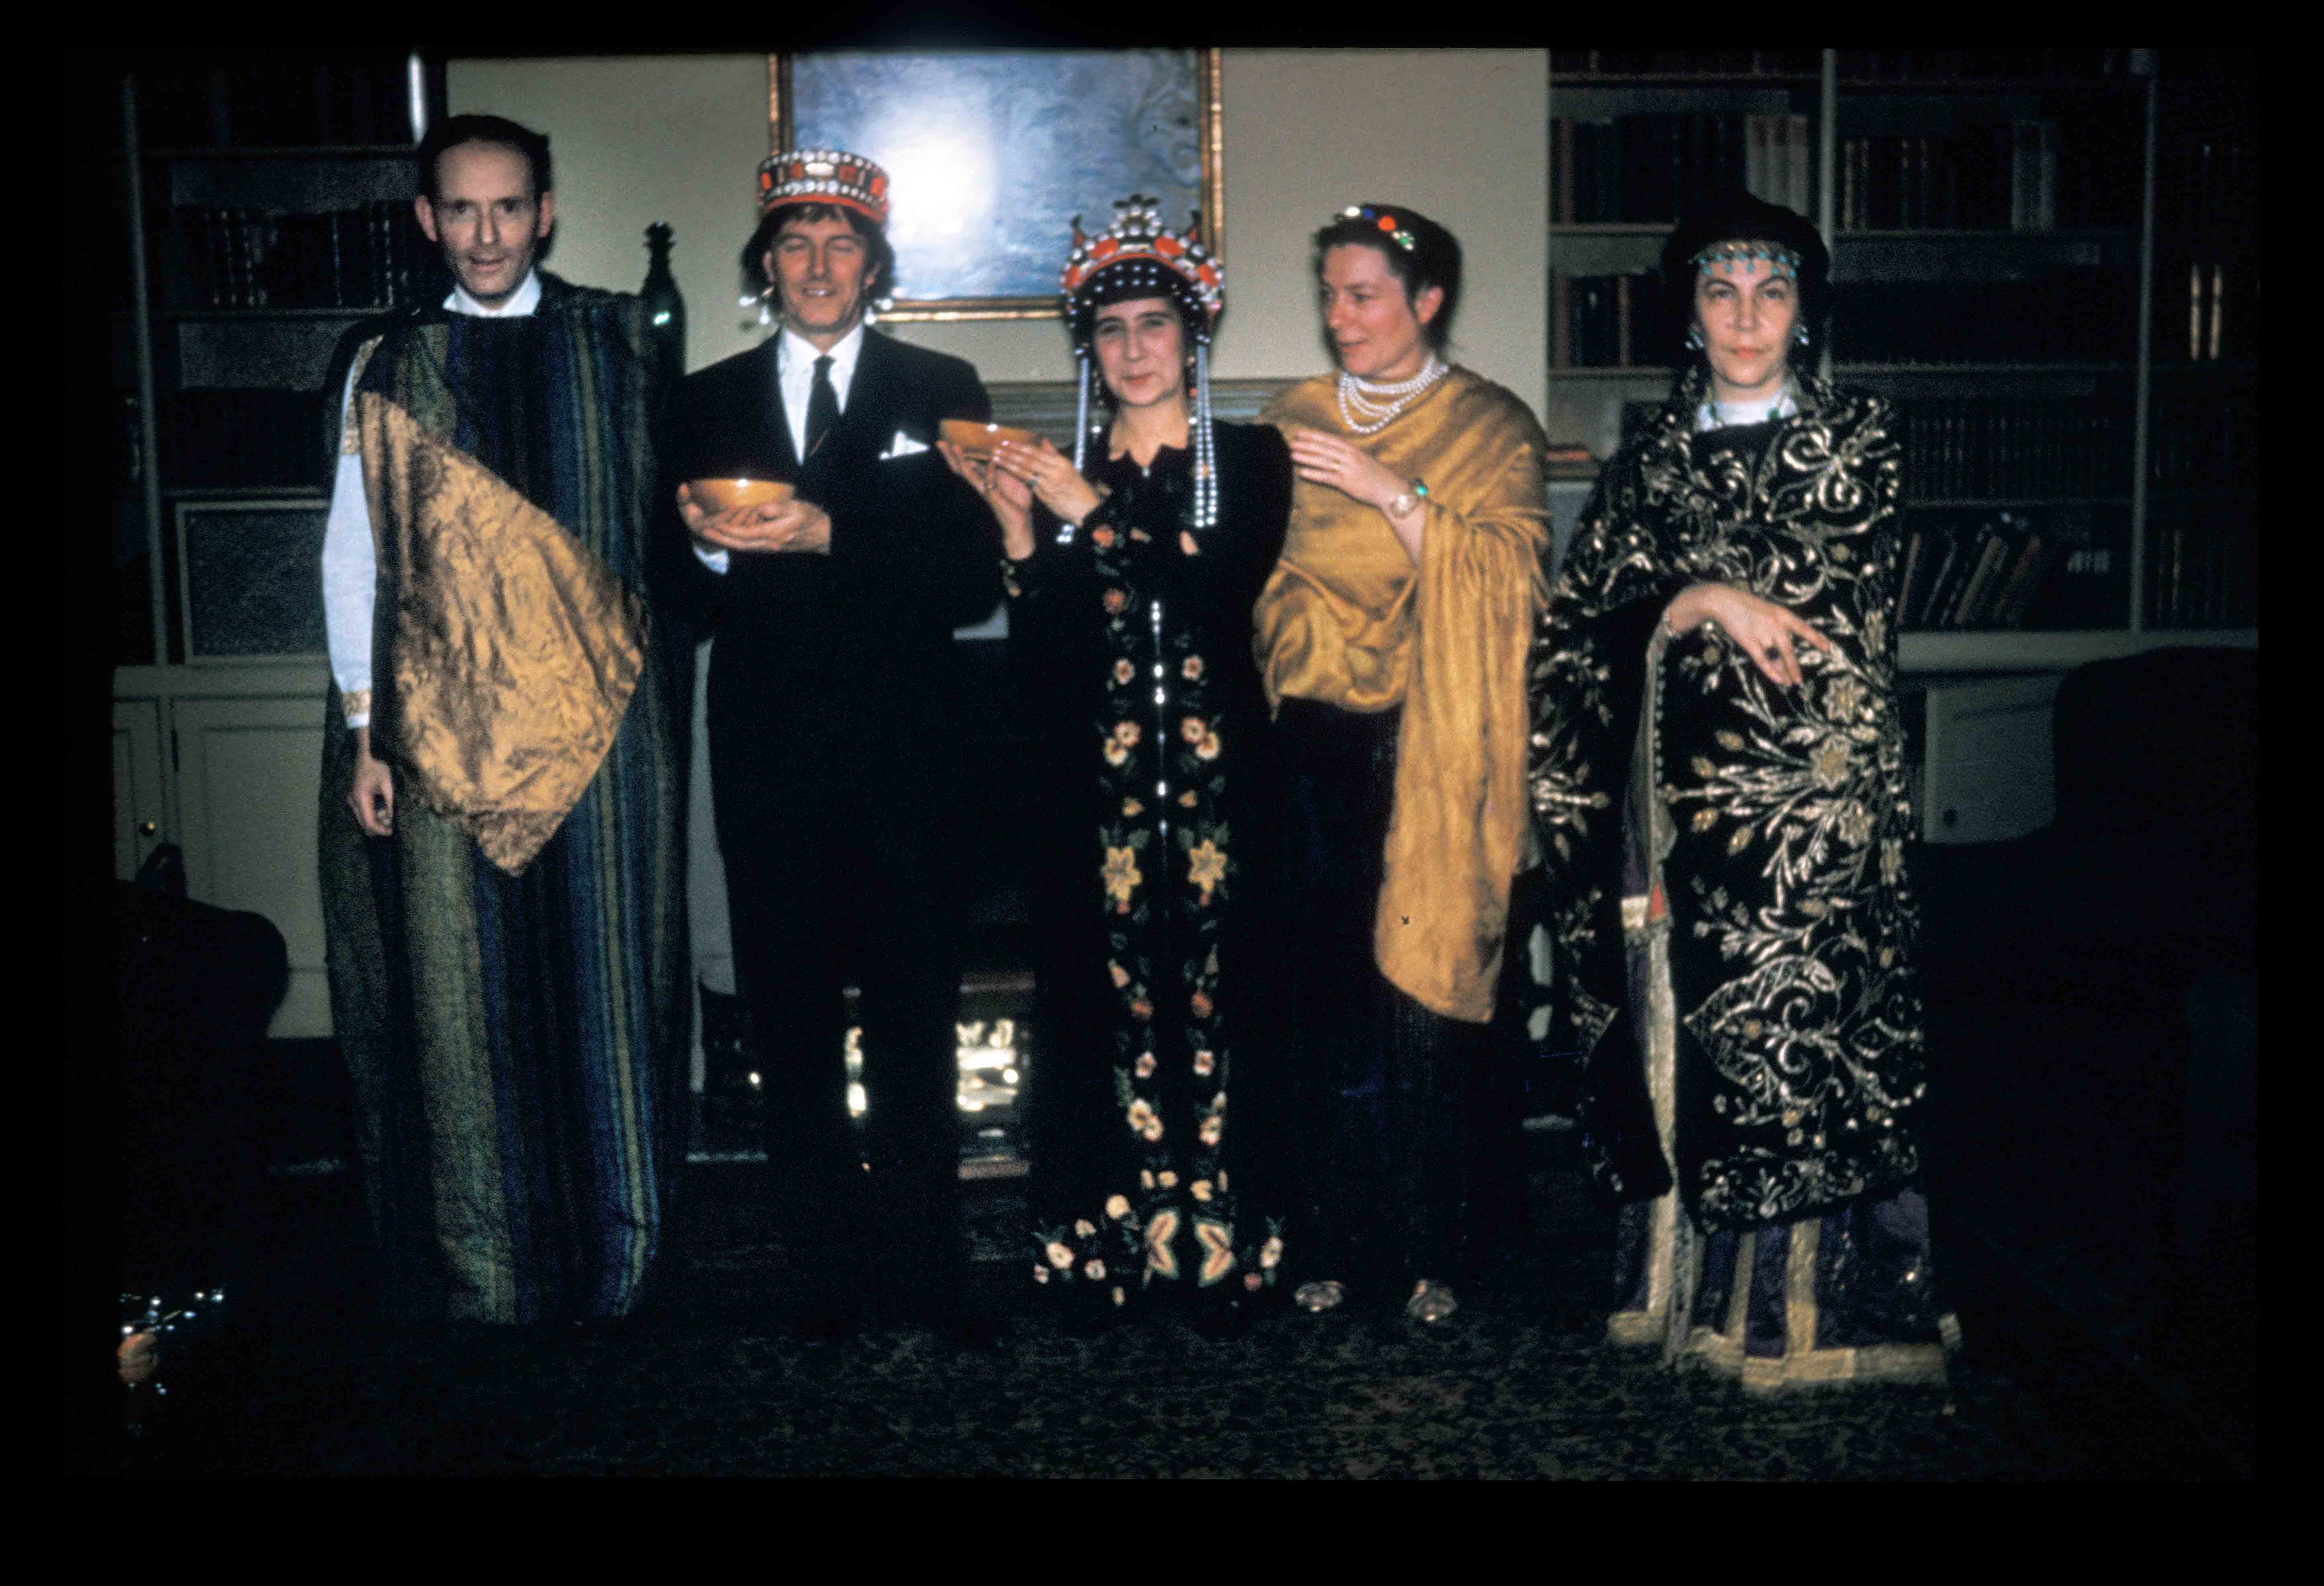 The Ravenna Group – Ernst Kitzinger as Justinian, Peter Megaw wearing Justinian's crown, Electra Megaw as Theodora, and Susan Kitzinger and Seka Allen as attendants in Theodora's retinue